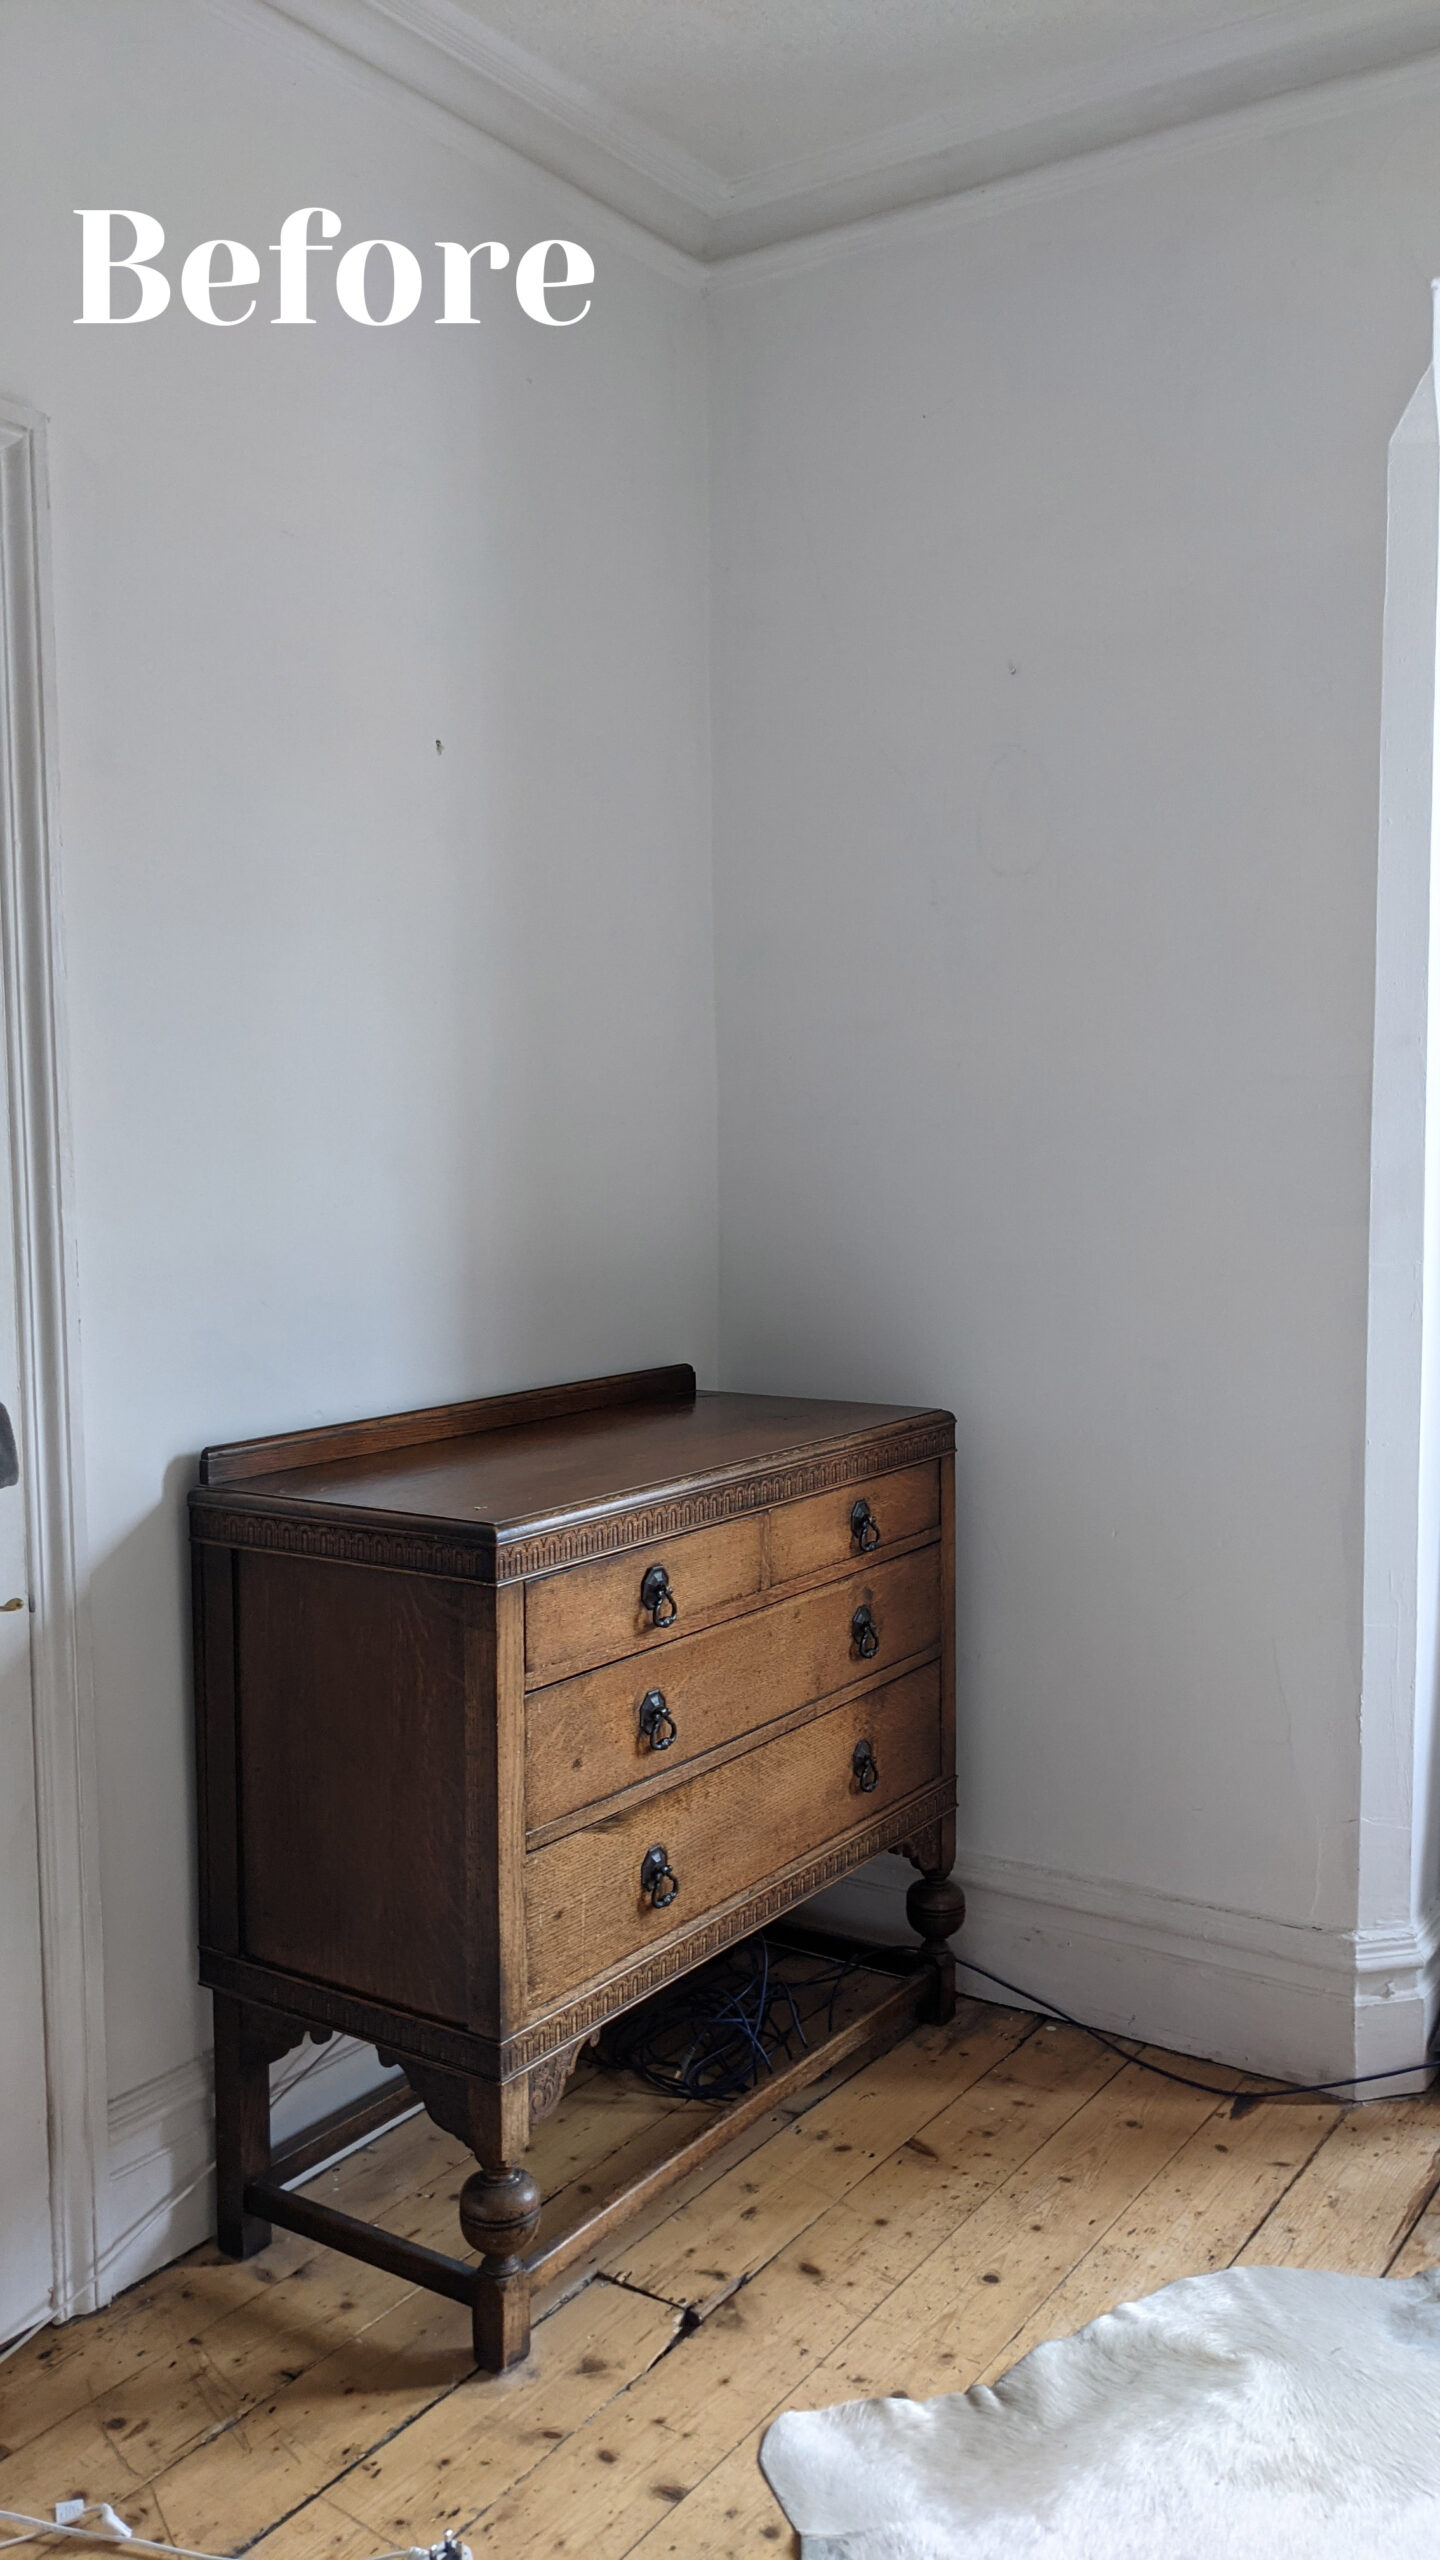 Bedroom Corner Before showing white walls with vintage chest of drawers